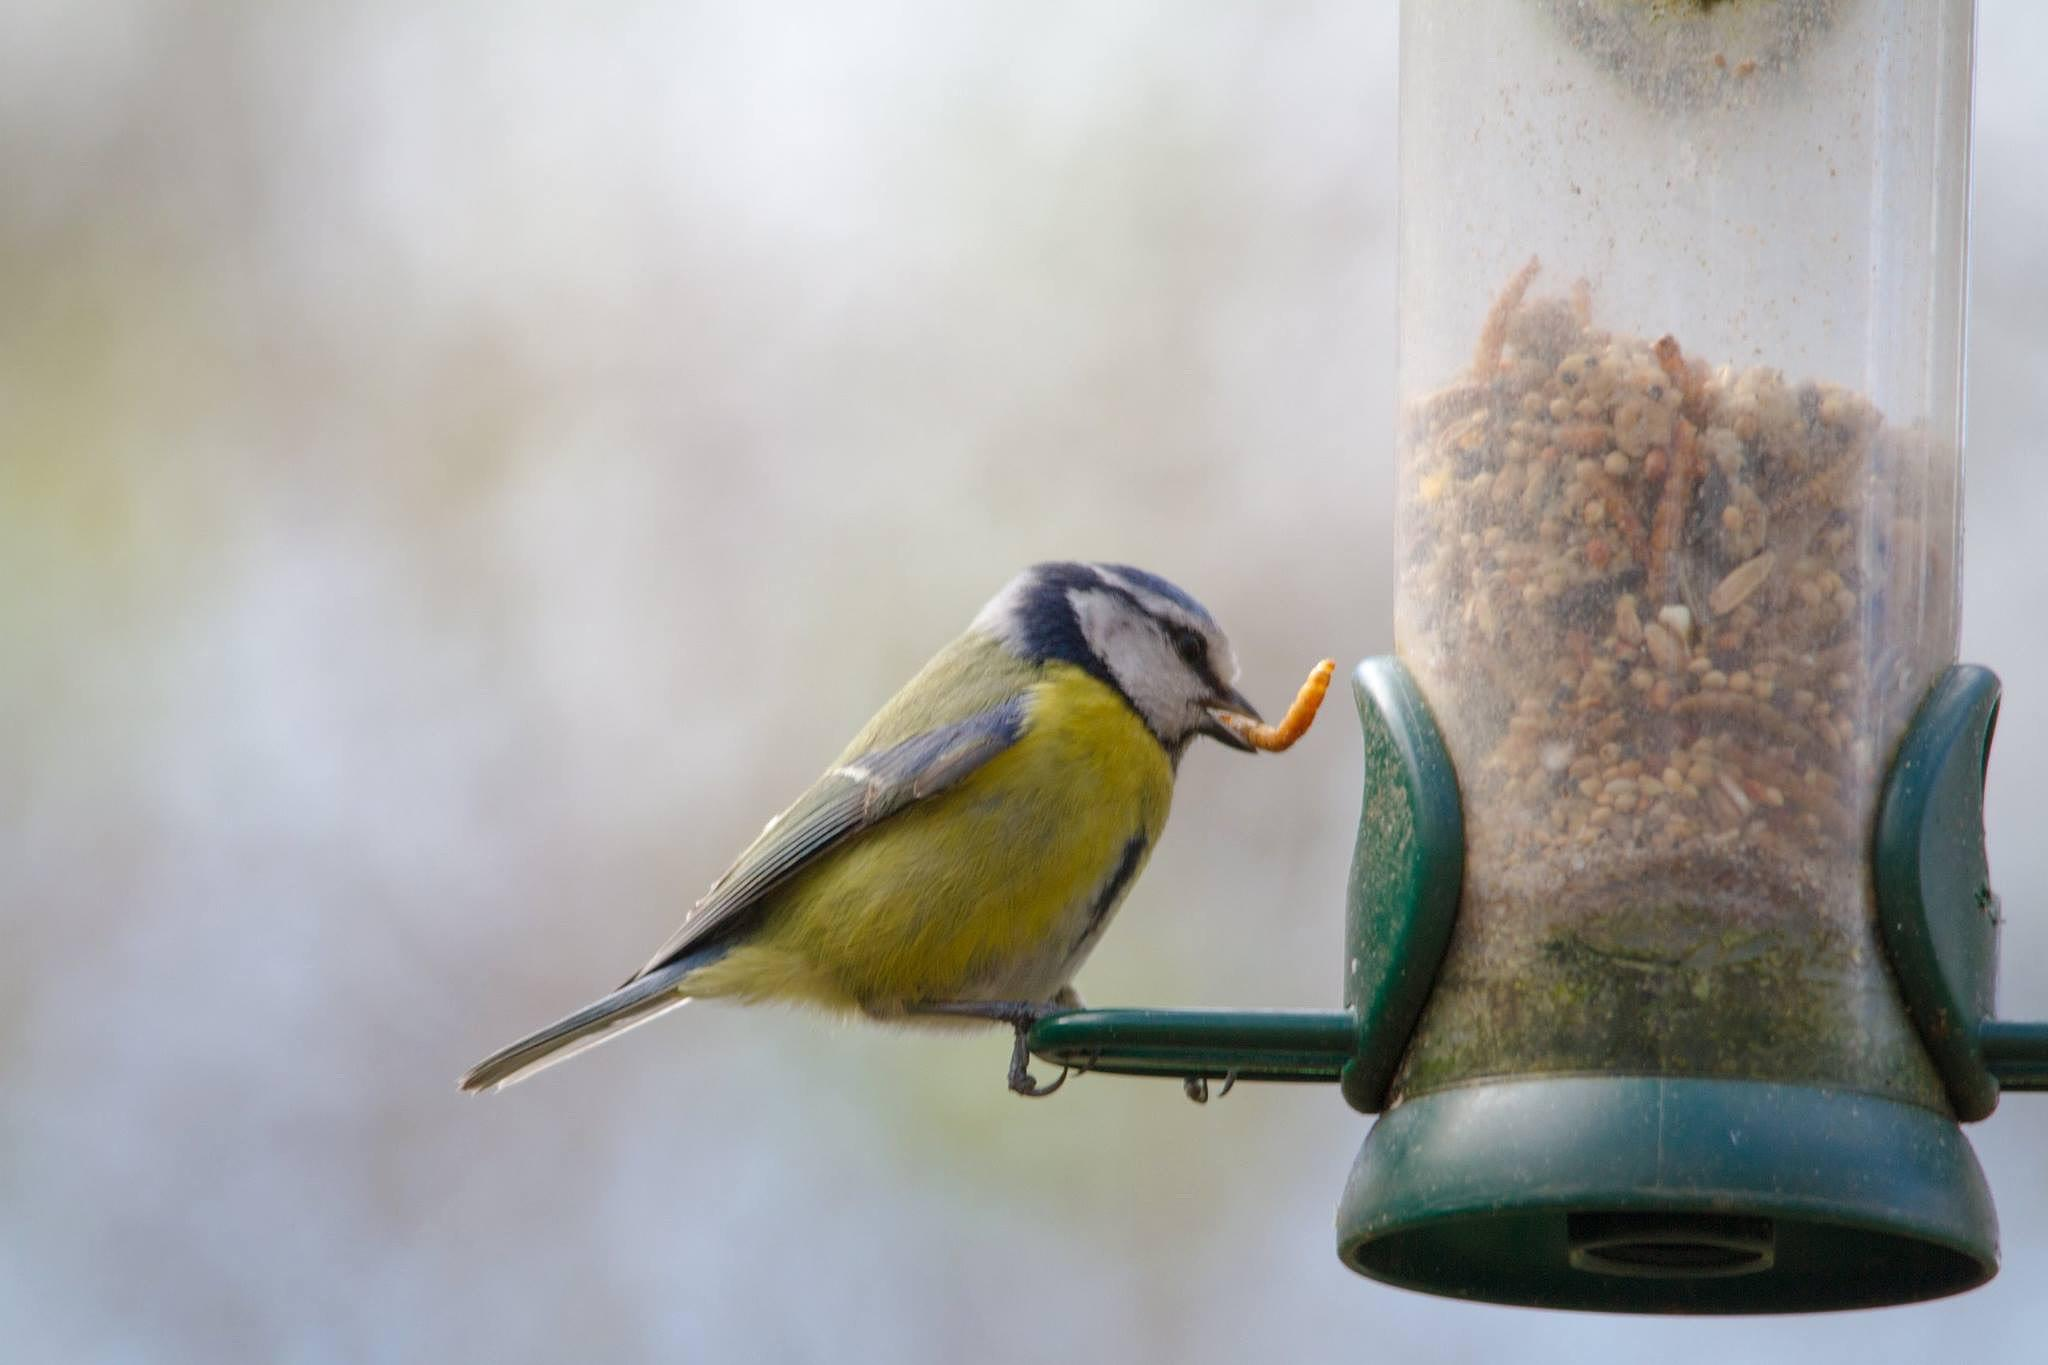 Bluetit gets the worm by paul.hunter.526